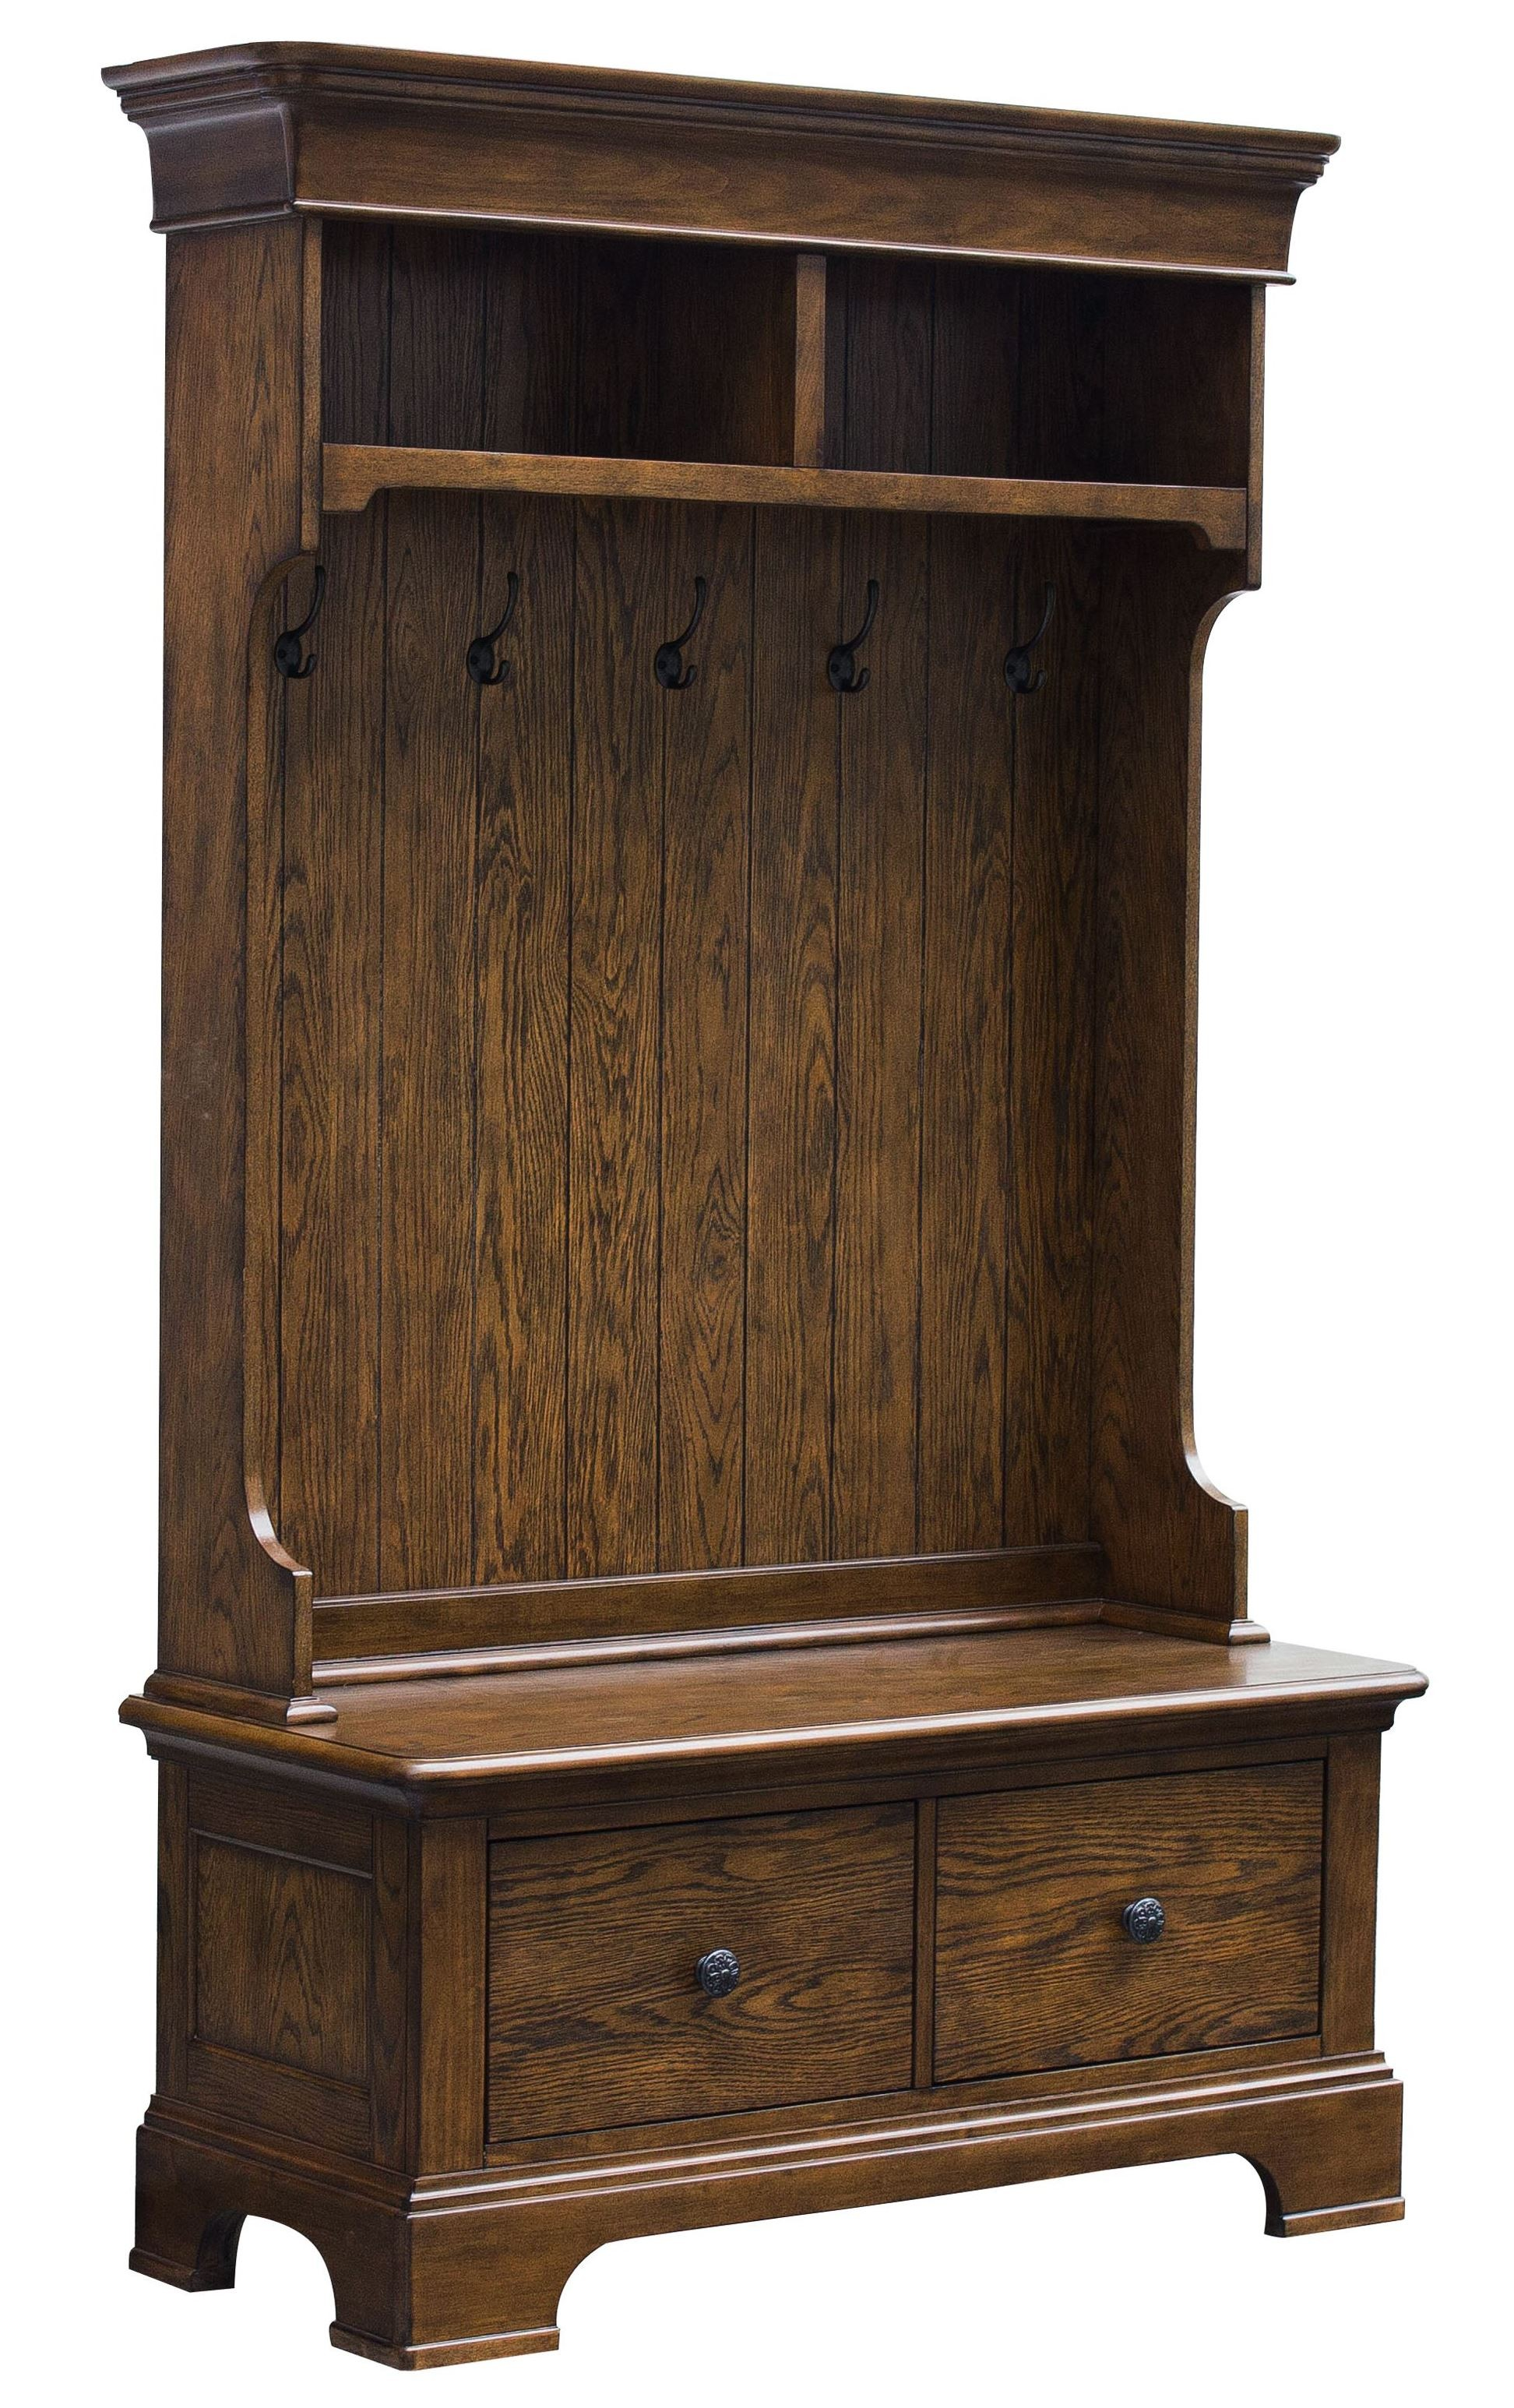 Oak Hall Tree with Storage Bench, D046-109-01, Pulaski